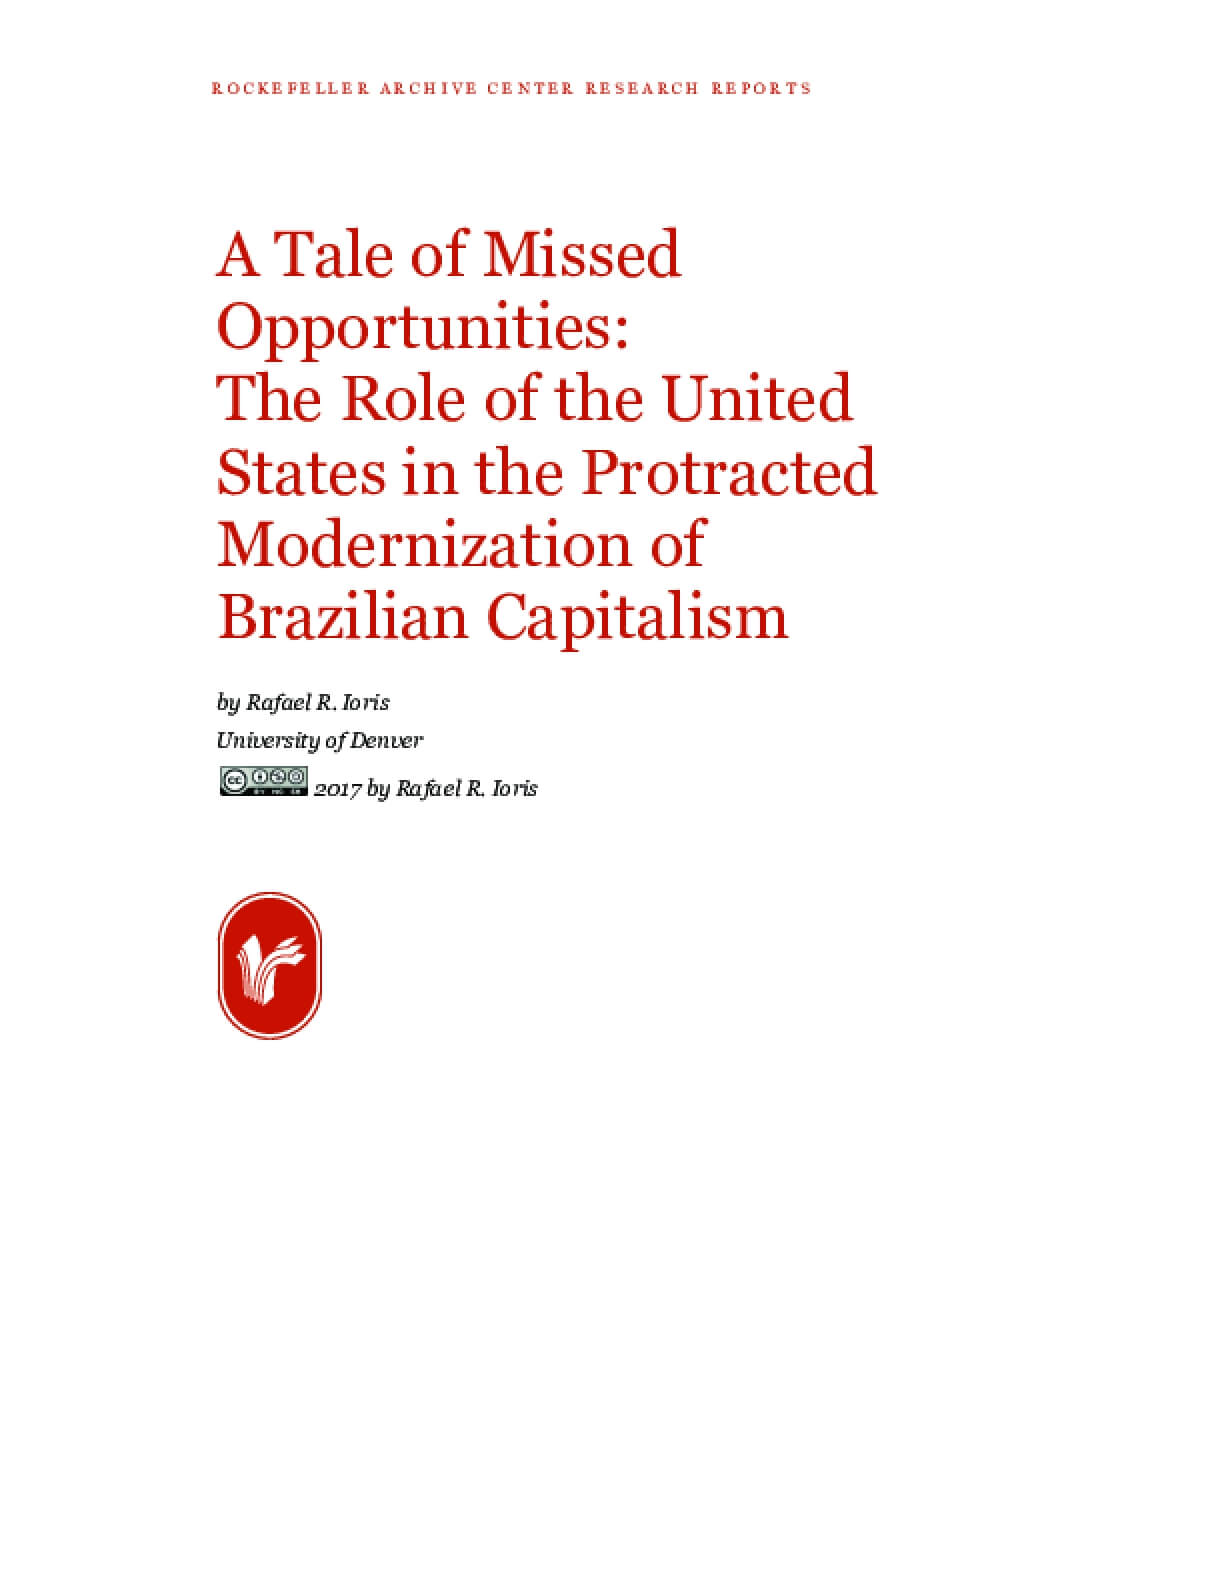 the anthropology of capitalism in the united states Since the early 1970s, academic analyses of mexican migration to the united states have become a sizeable scholarly literature scholars from the disciplines of anthropology, economics, geography, history, law, political science, and sociology have dedicated much attention to understanding the .